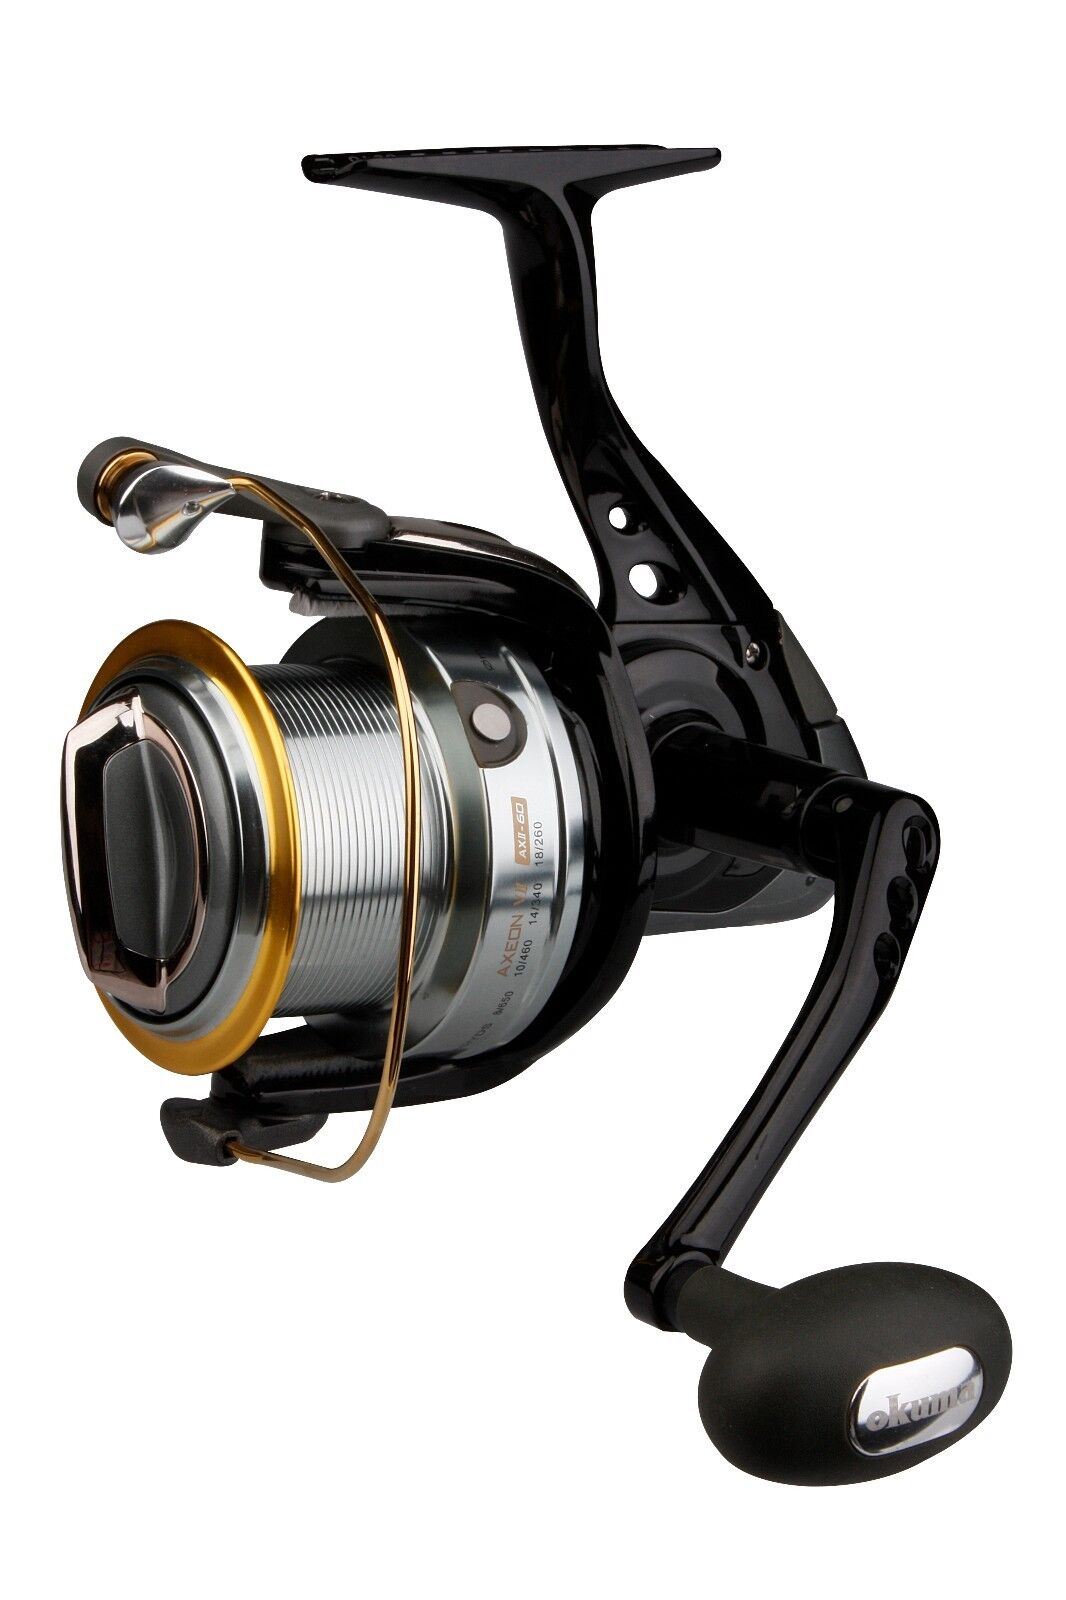 OKUMA AXEON V2 AXII-60 COARSE FISHING REEL CARP BARBEL PIKE ZANDER BIG PIT SURF